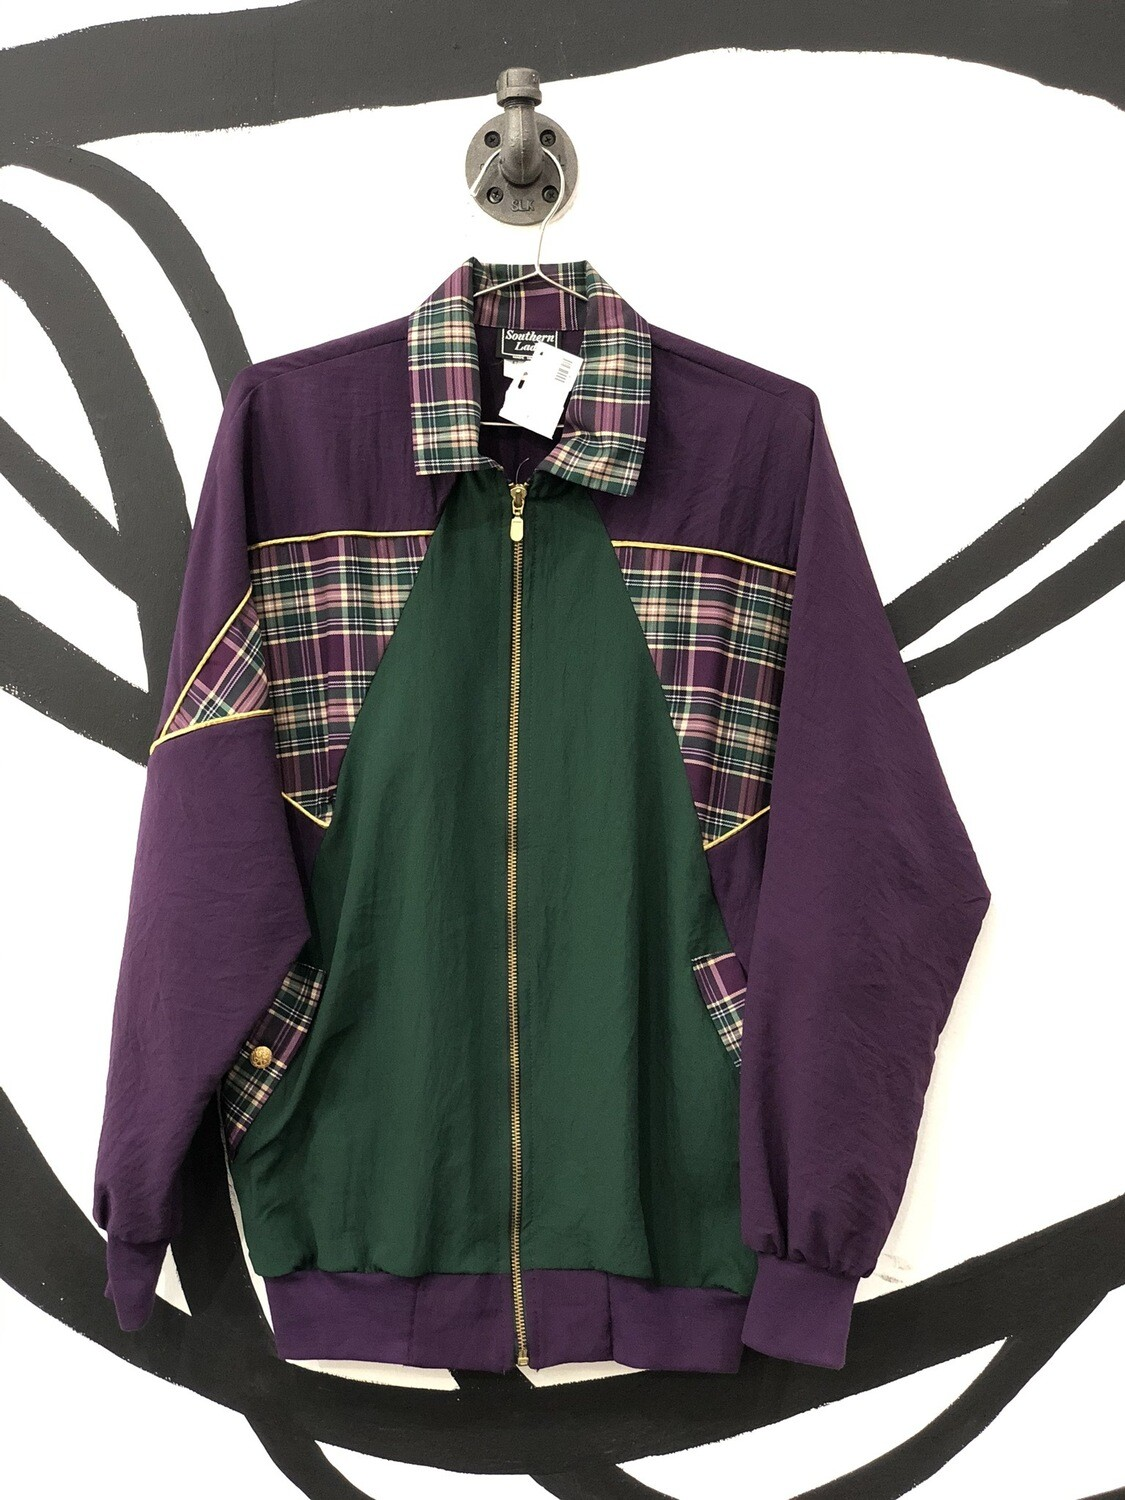 Southern Lady Plaid Accent Track Jacket Size M